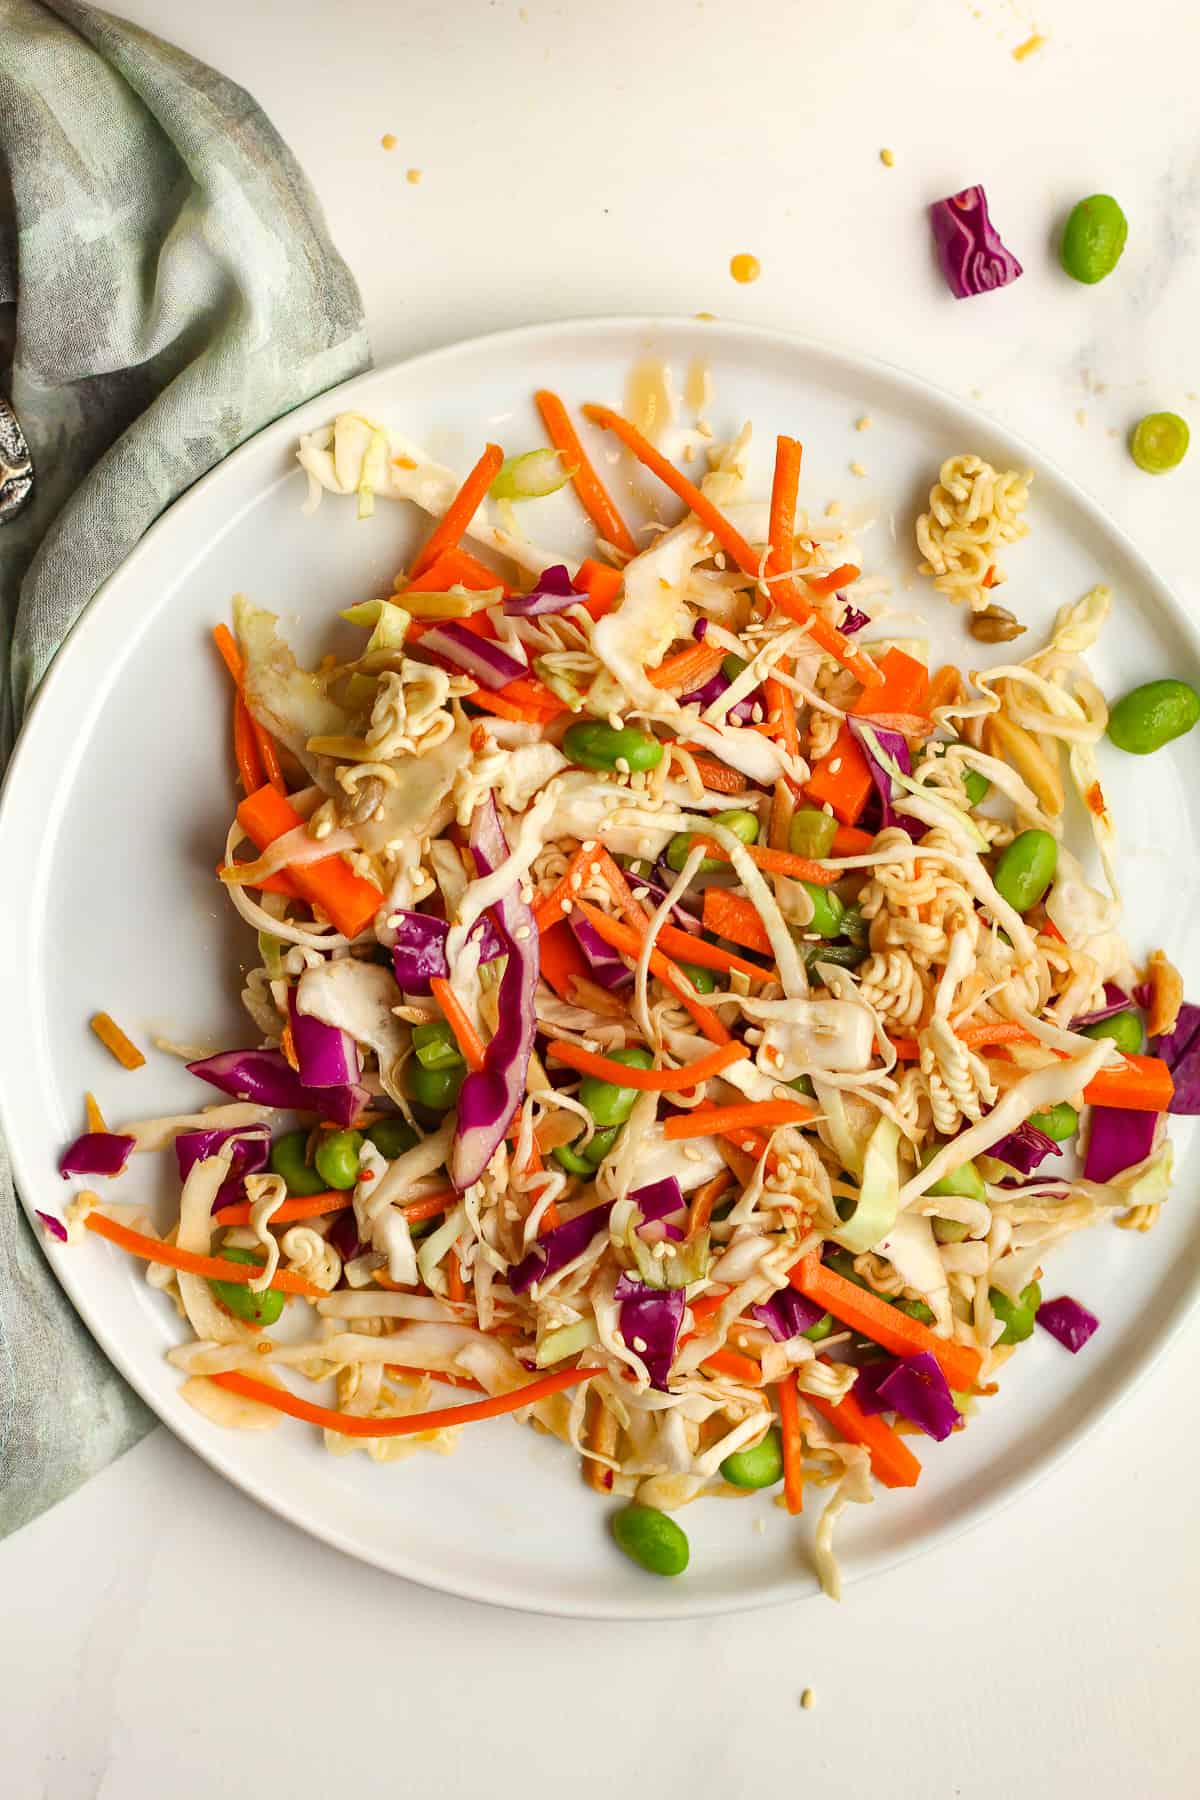 A plate of a serving of Asian Cabbage Salad.